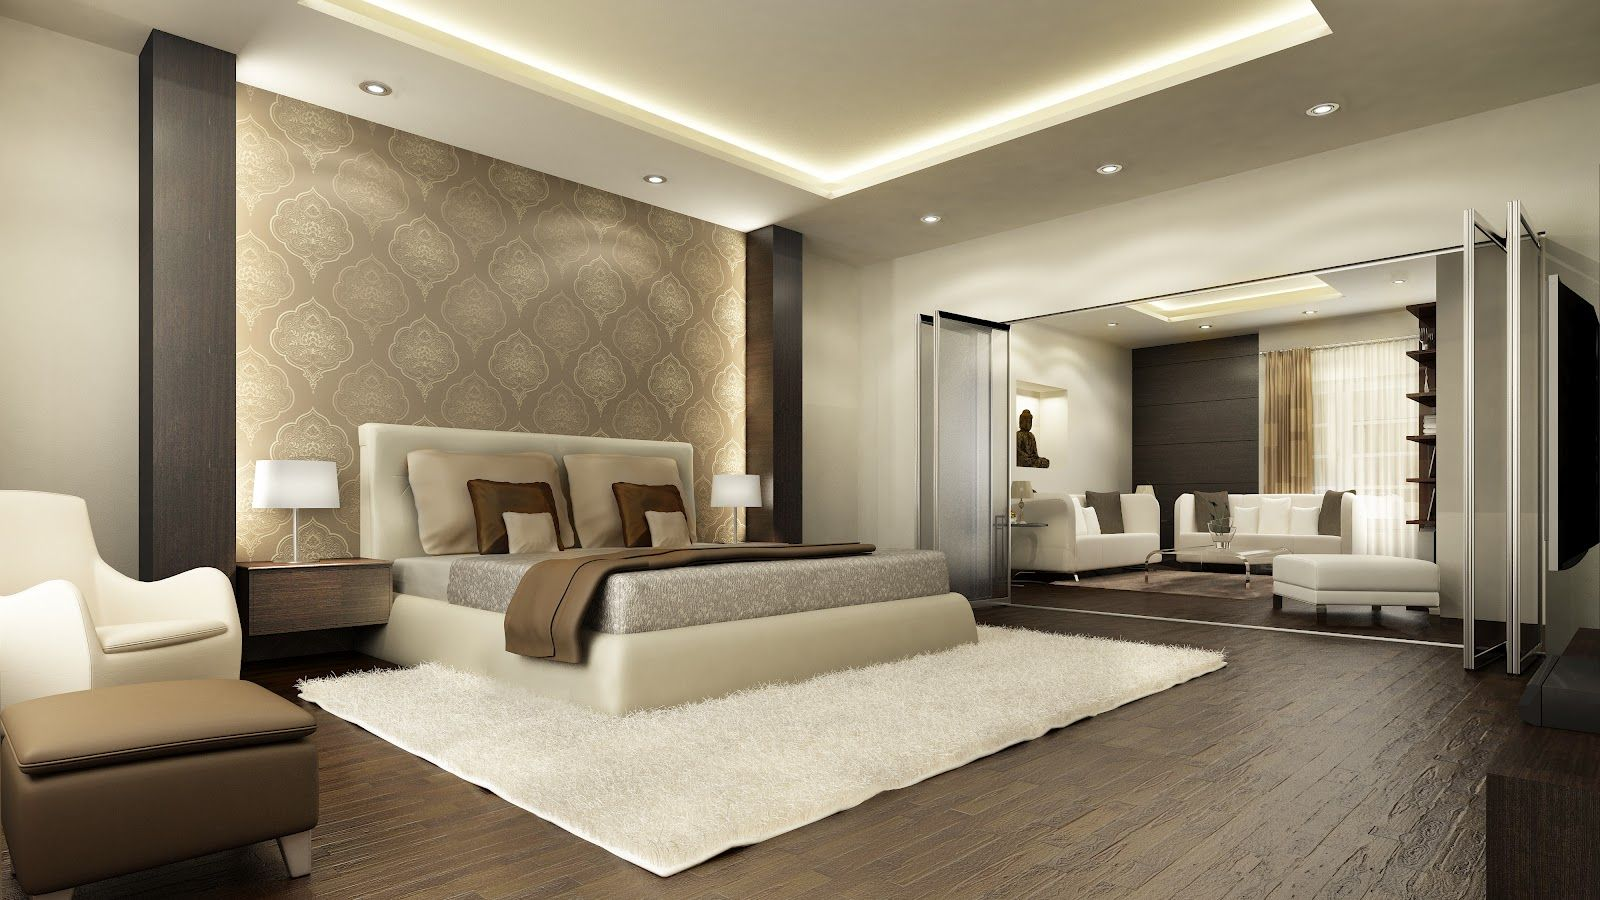 17 Best Ideas About Luxury Bedroom Design On Pinterest Luxurious Best Size  Tv For Bedroom.